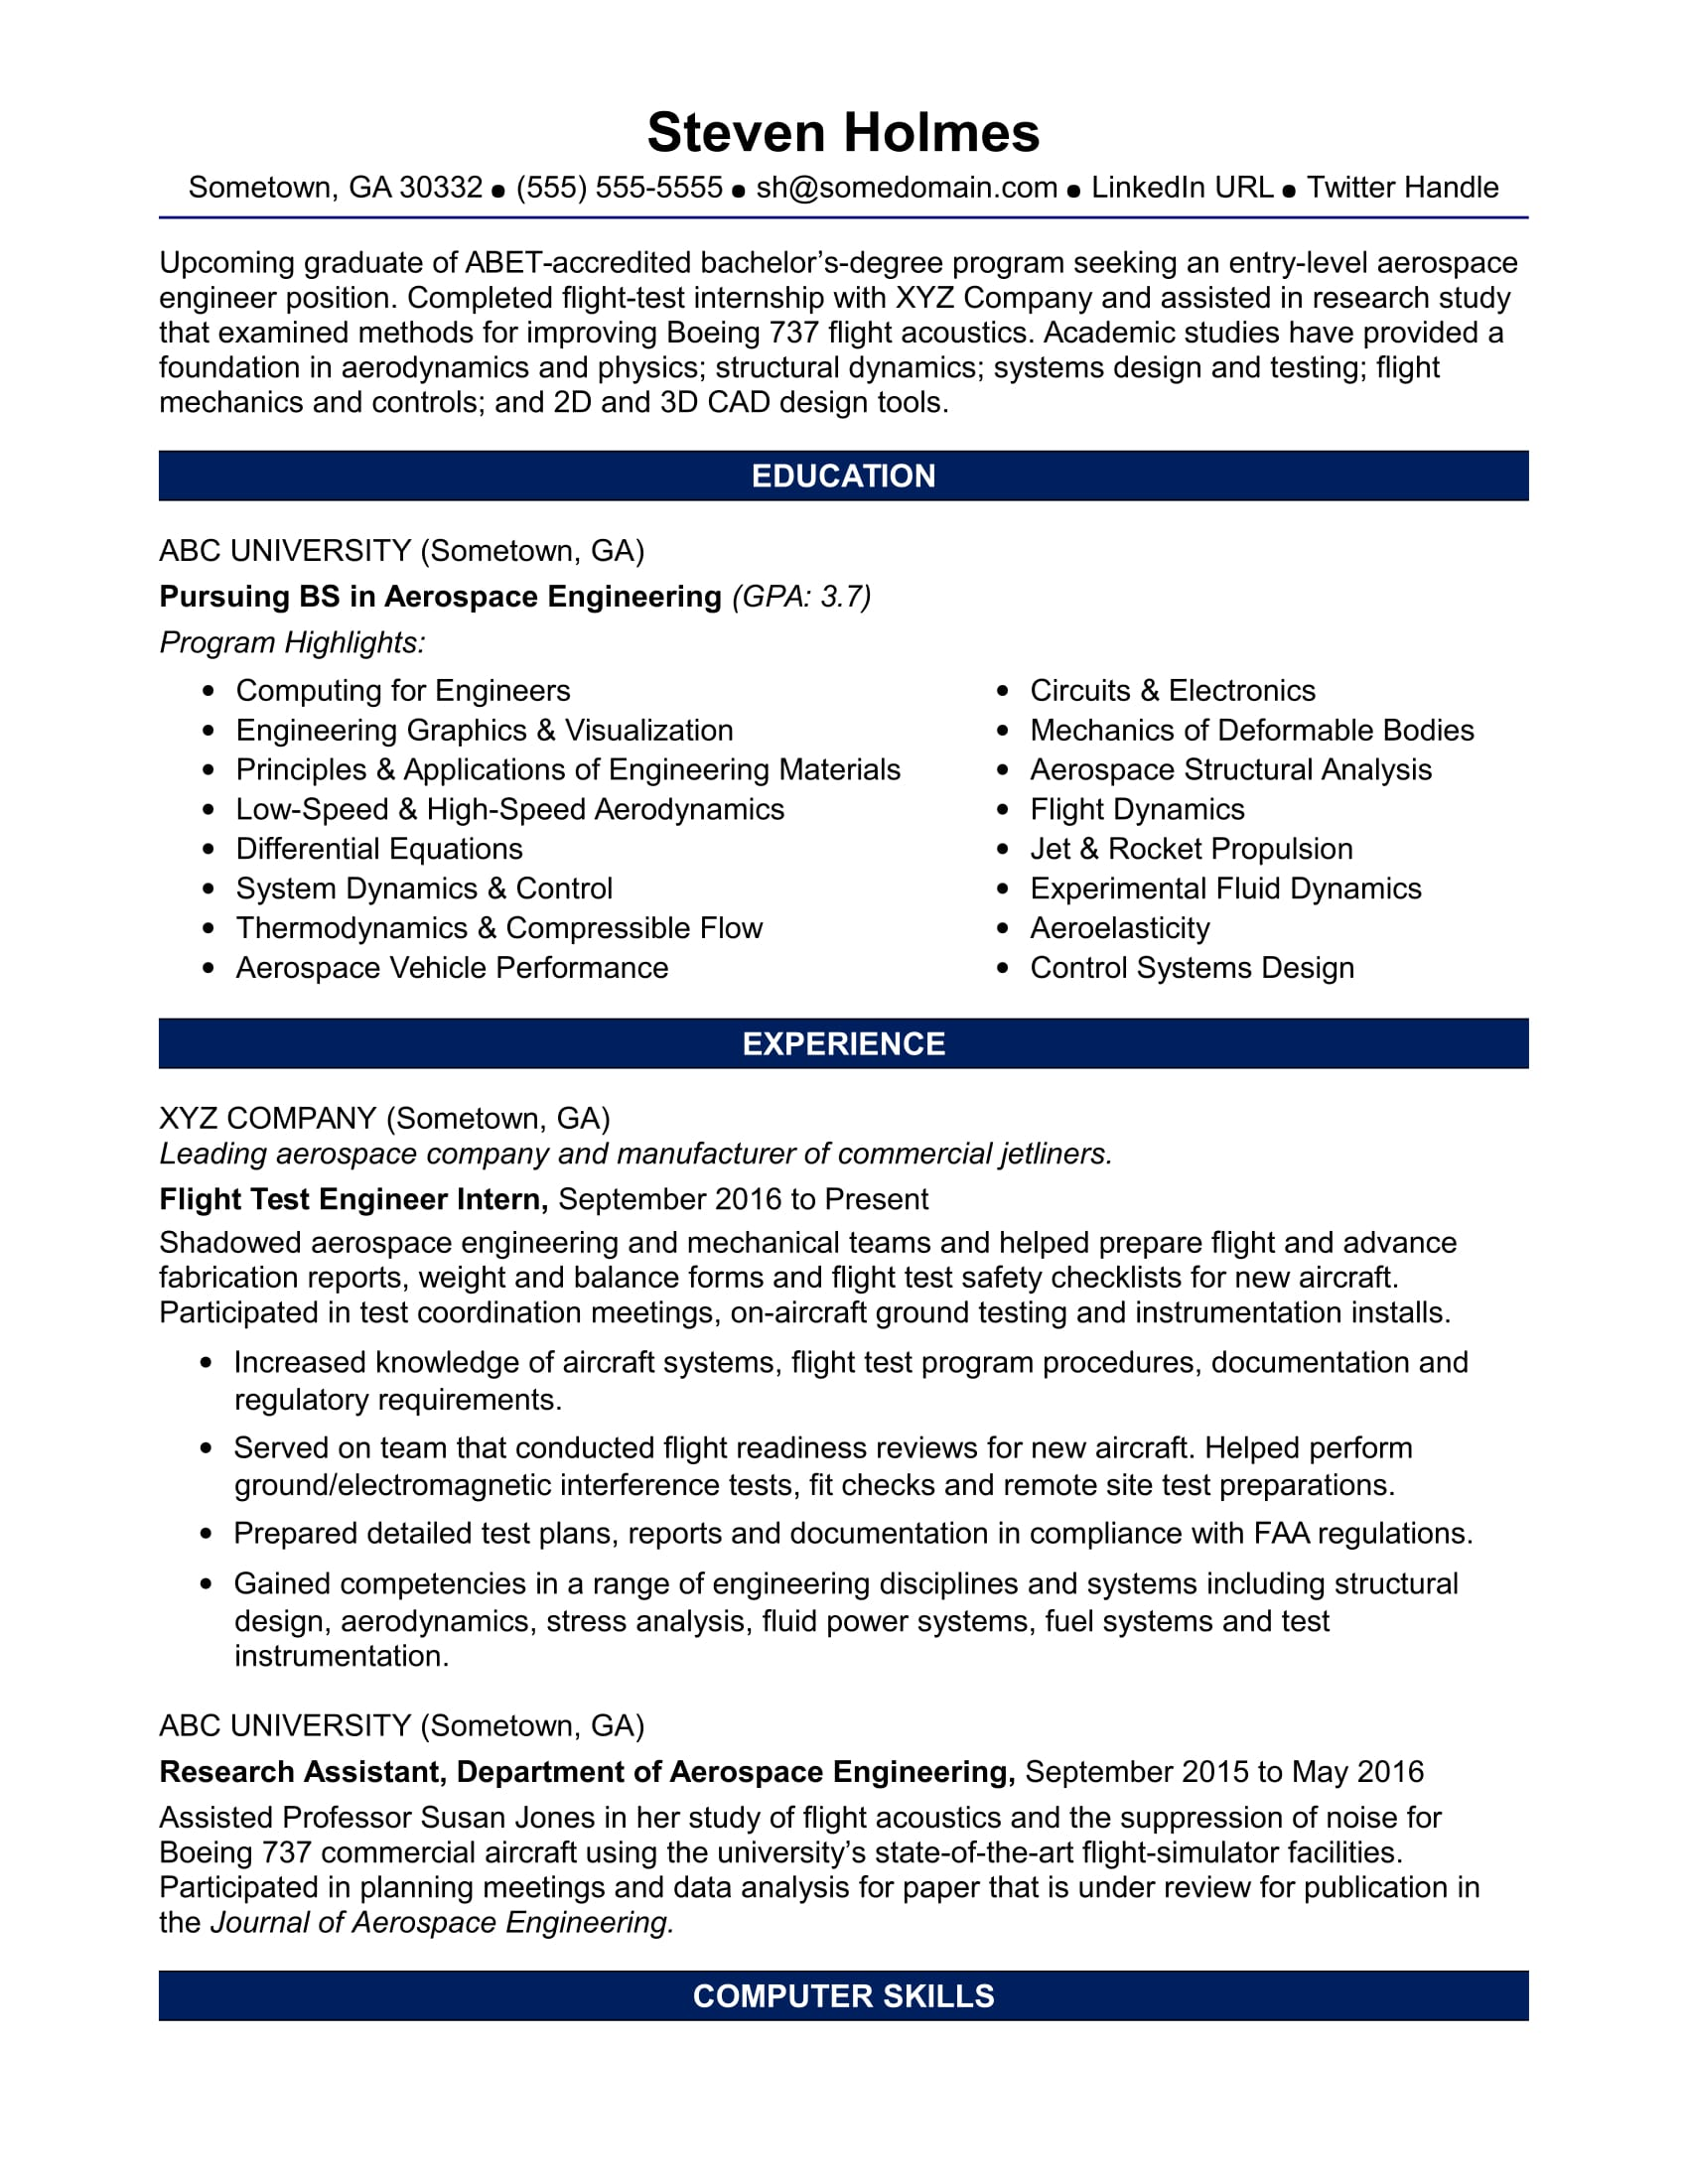 Exceptional Sample Resume For An Entry Level Aerospace Engineer